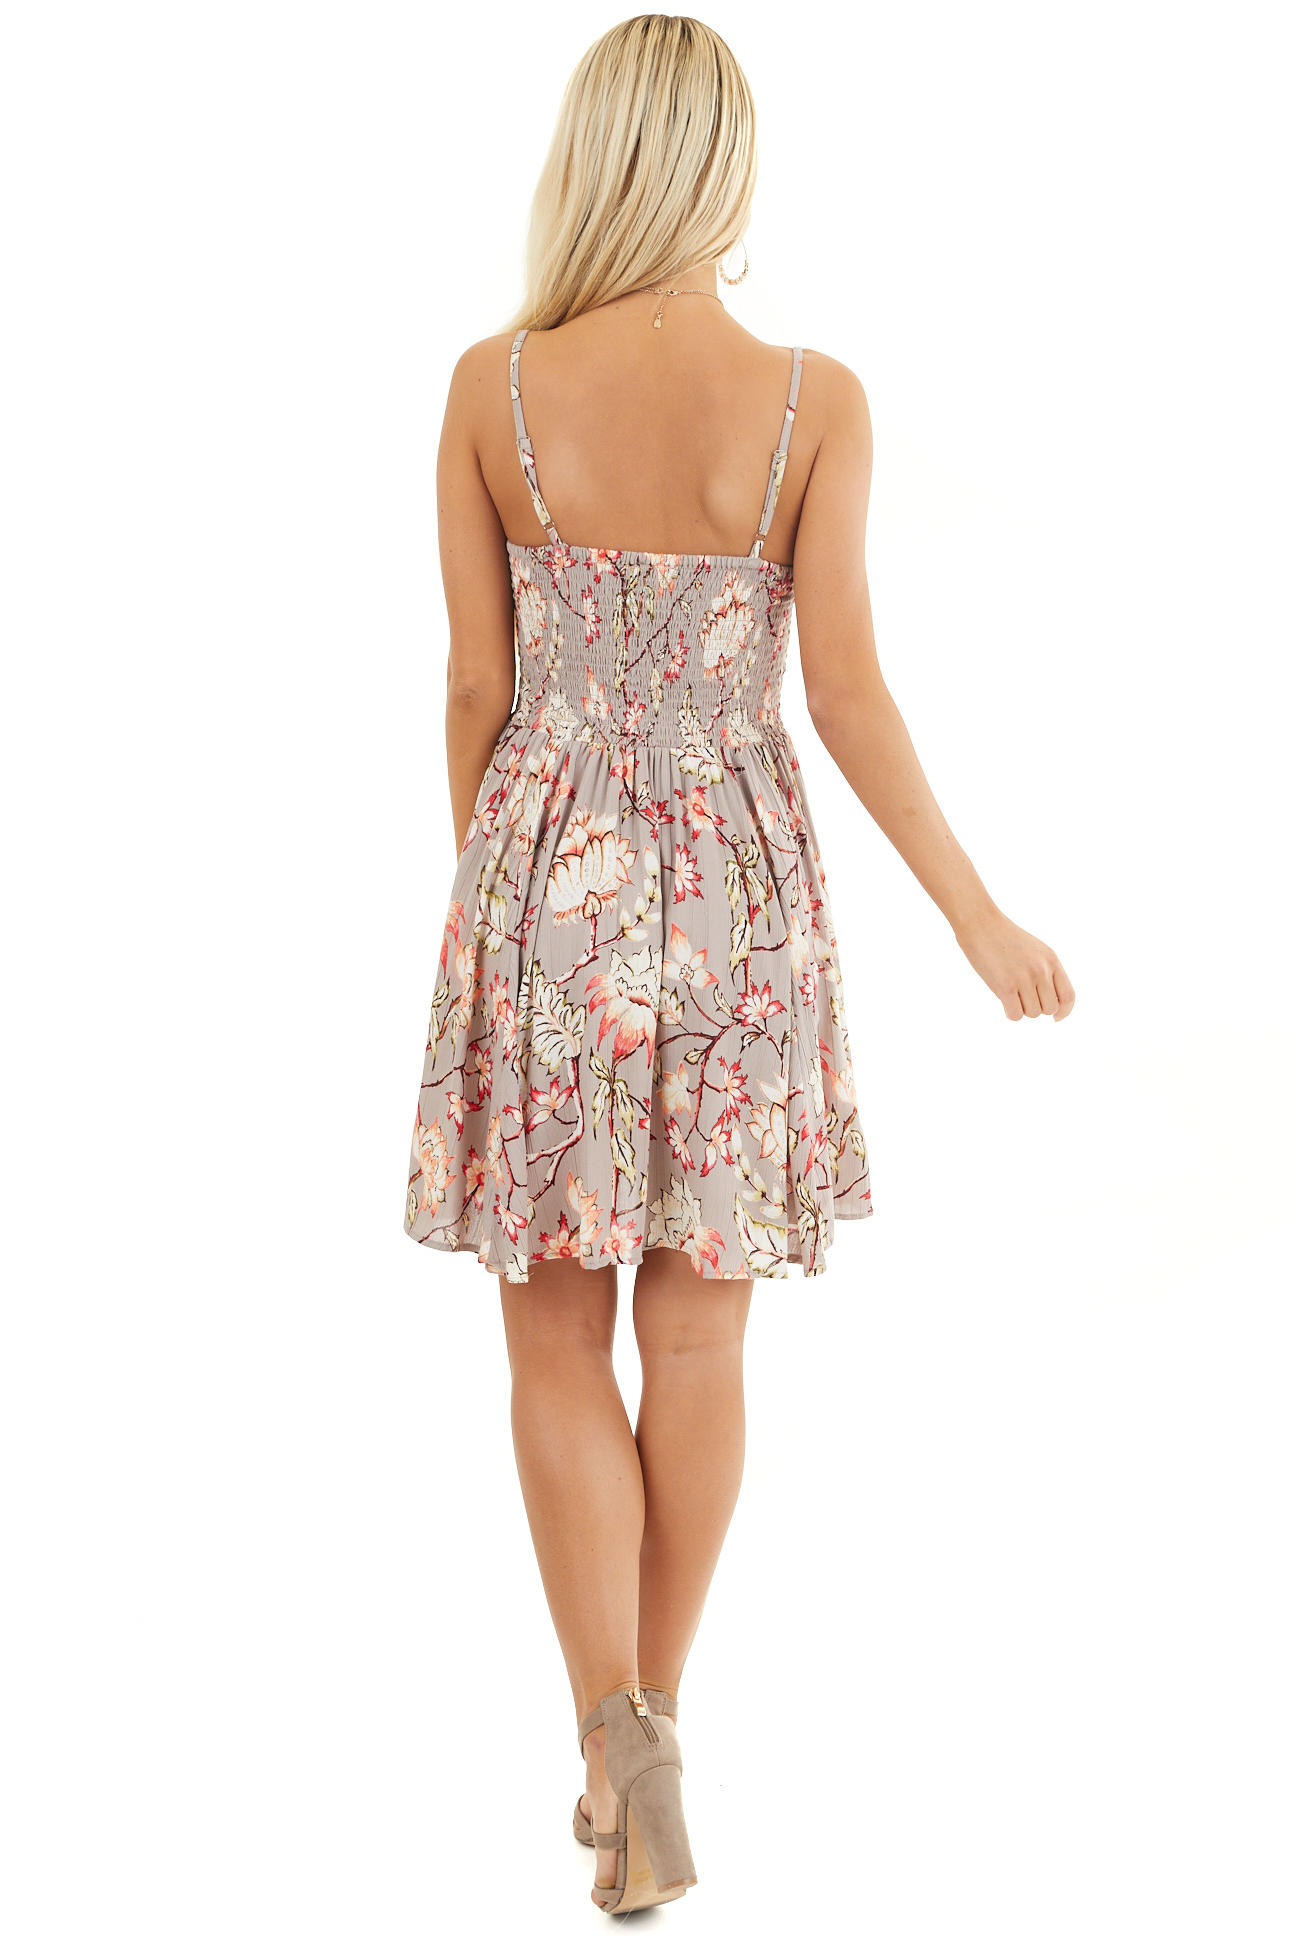 Taupe Floral Print Mini Dress with Spaghetti Straps back full body